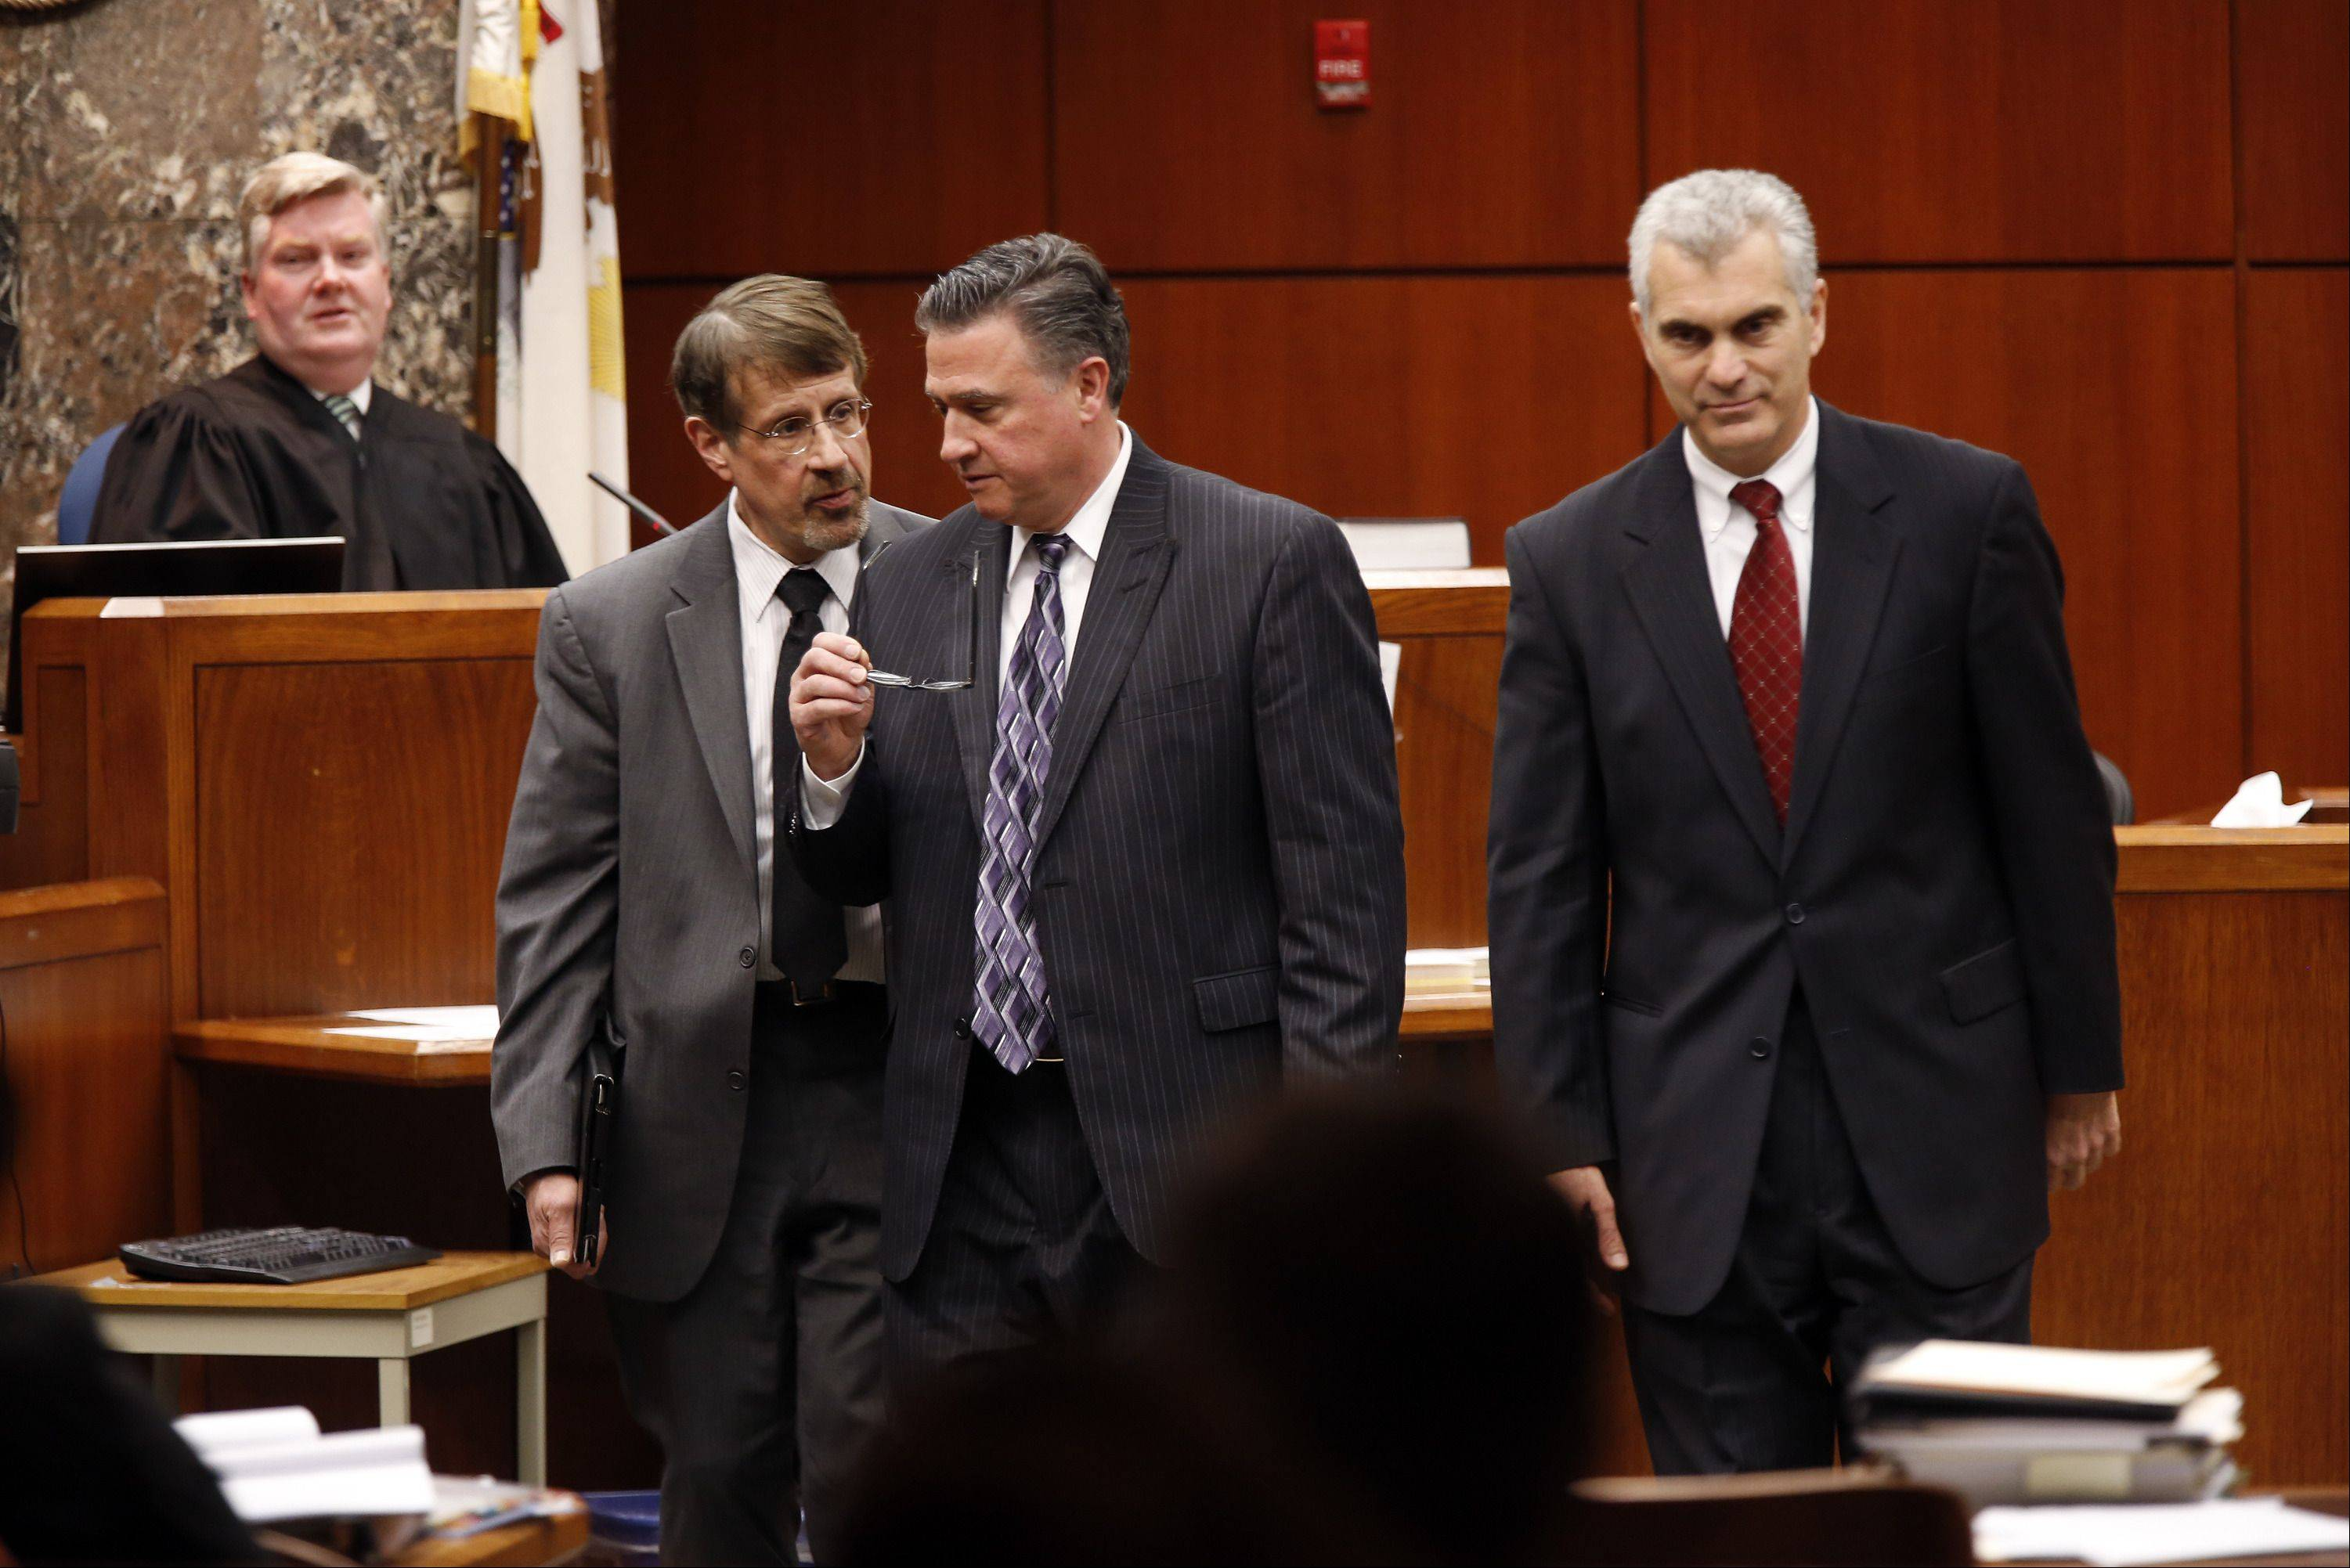 POOL/Chicago Tribune, Chuck BermanDefense attorneys Richard Kling, from left and Paul DeLuca and DuPage County Assistant State's Attorney Joe Ruggiero head back to their seats after a sidebar with Judge Daniel Guerin, rear, Wednesday in Wheaton.